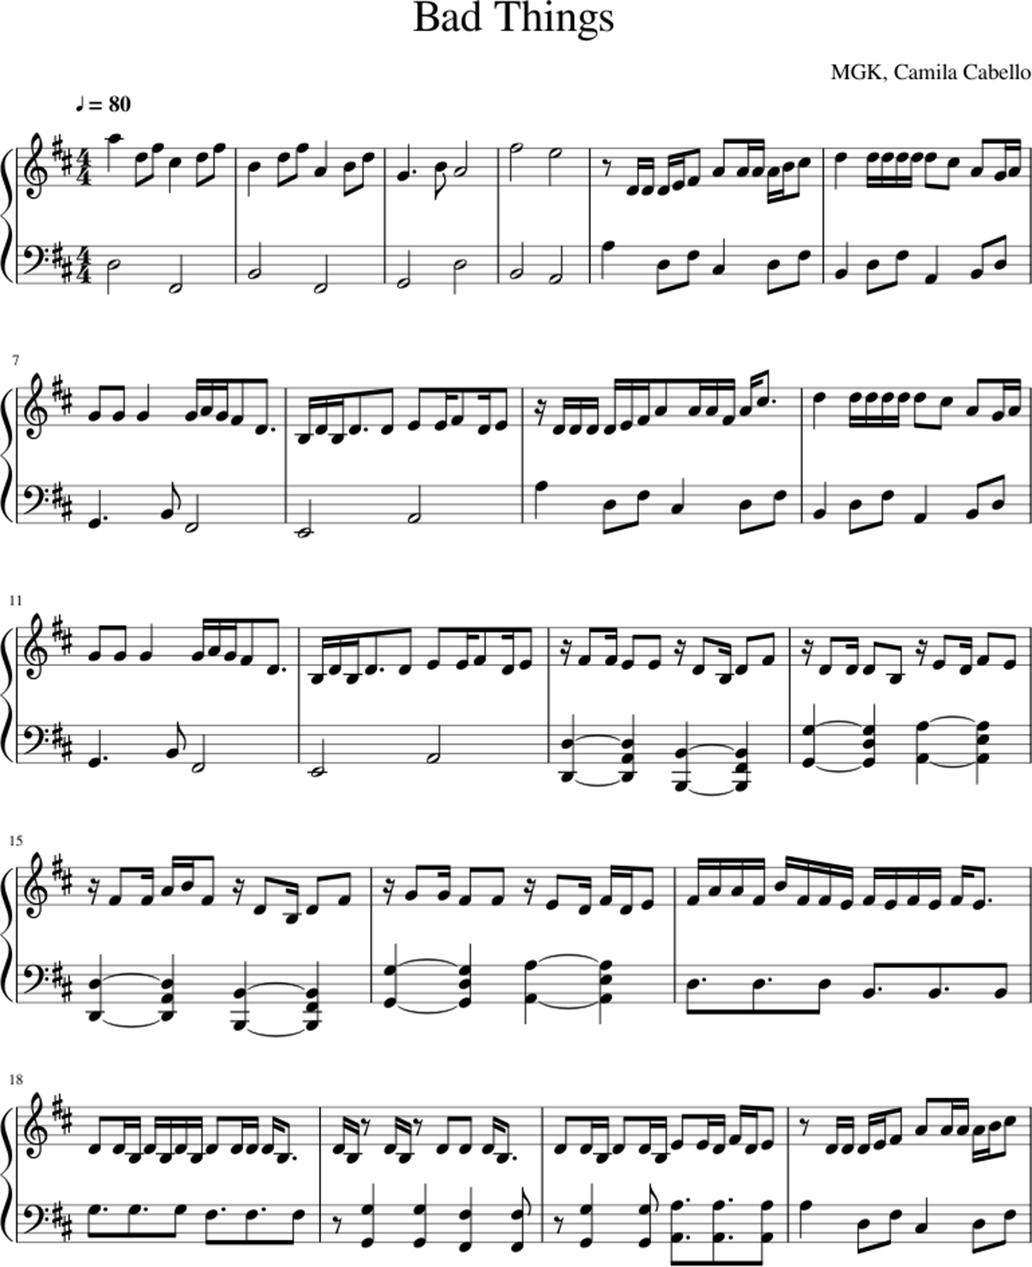 Bad things sheet music notes 1